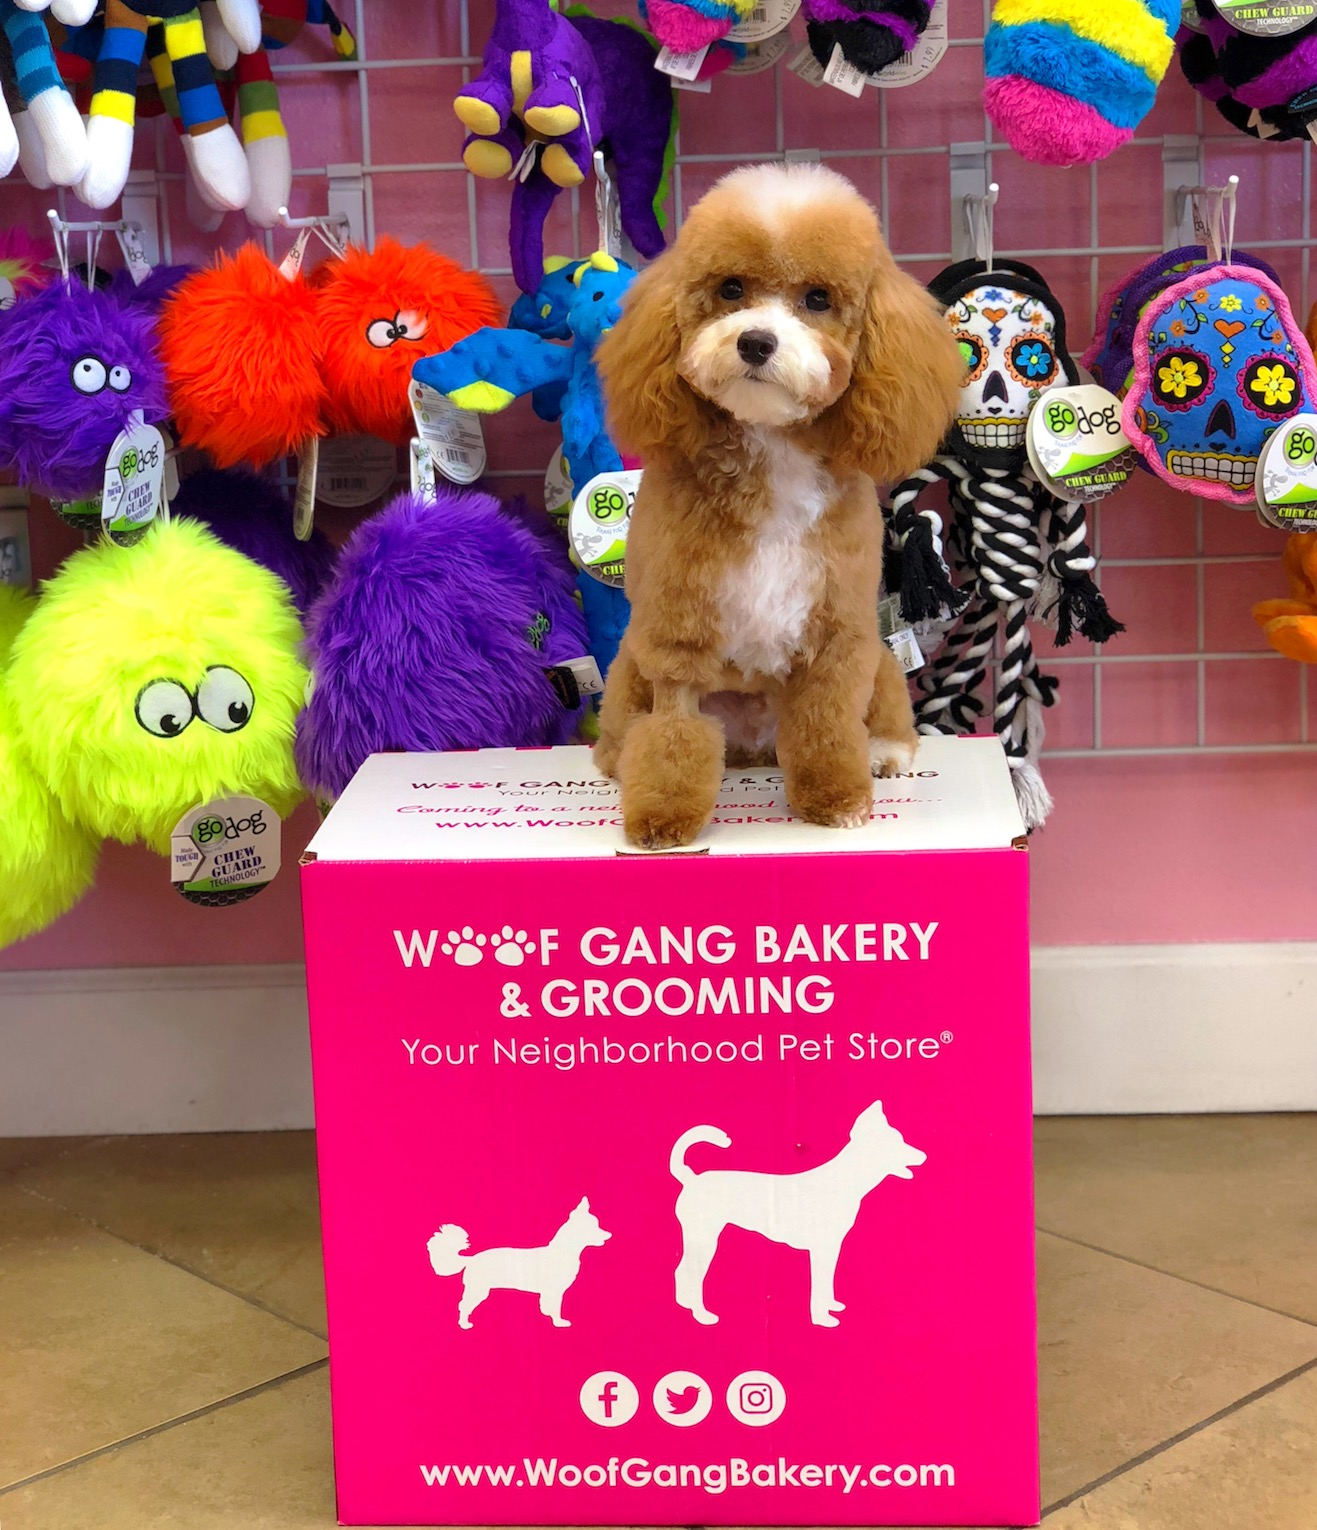 Fluffy little puppy on a Woof Gang Bakery box